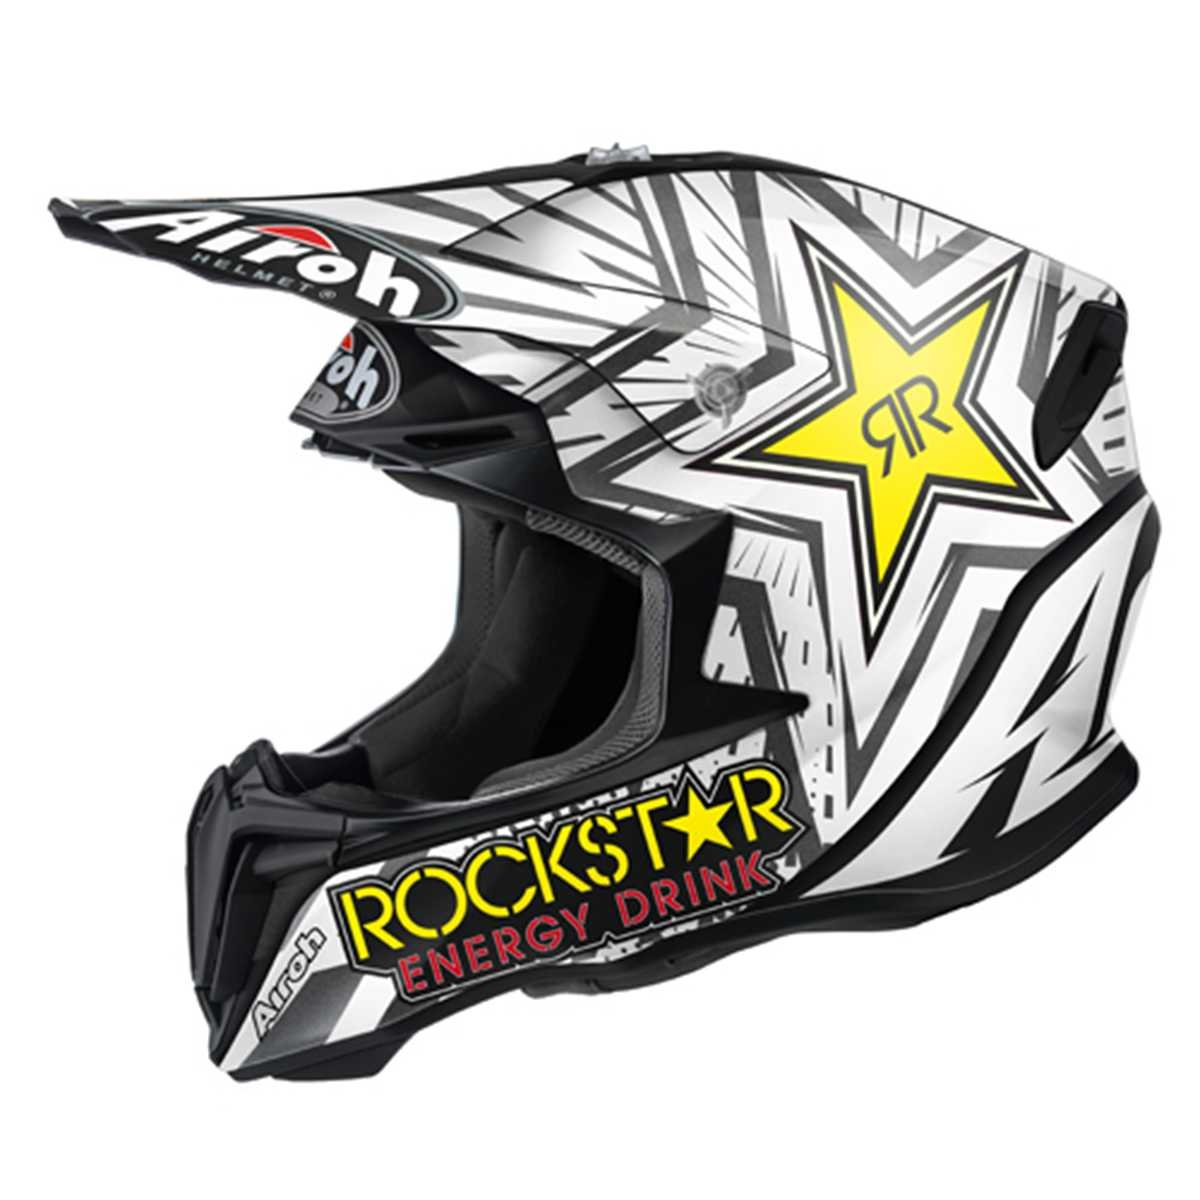 Airoh Casco Twist Rock Star - Mate: Airoh: Amazon.es: Deportes y aire libre